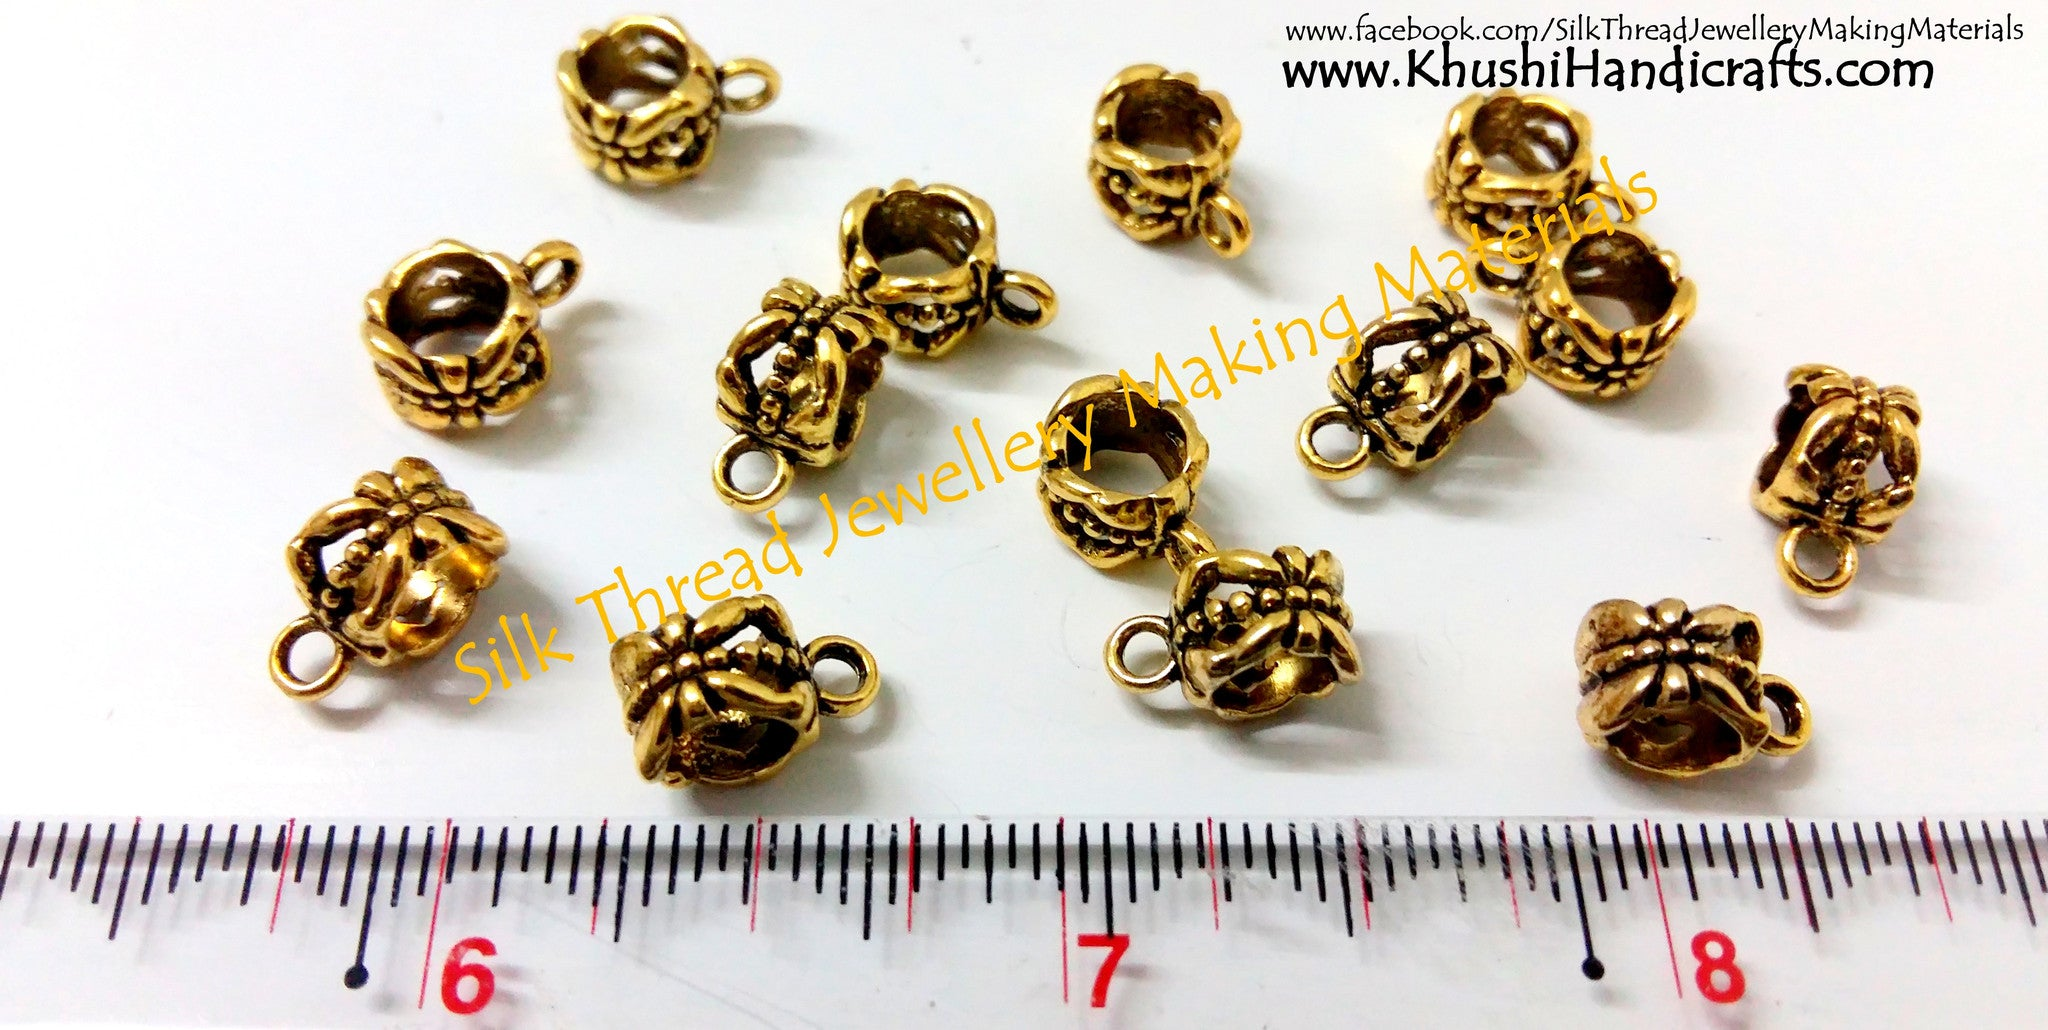 High Quality Antique Gold Bails - Khushi Handmade Jewellery